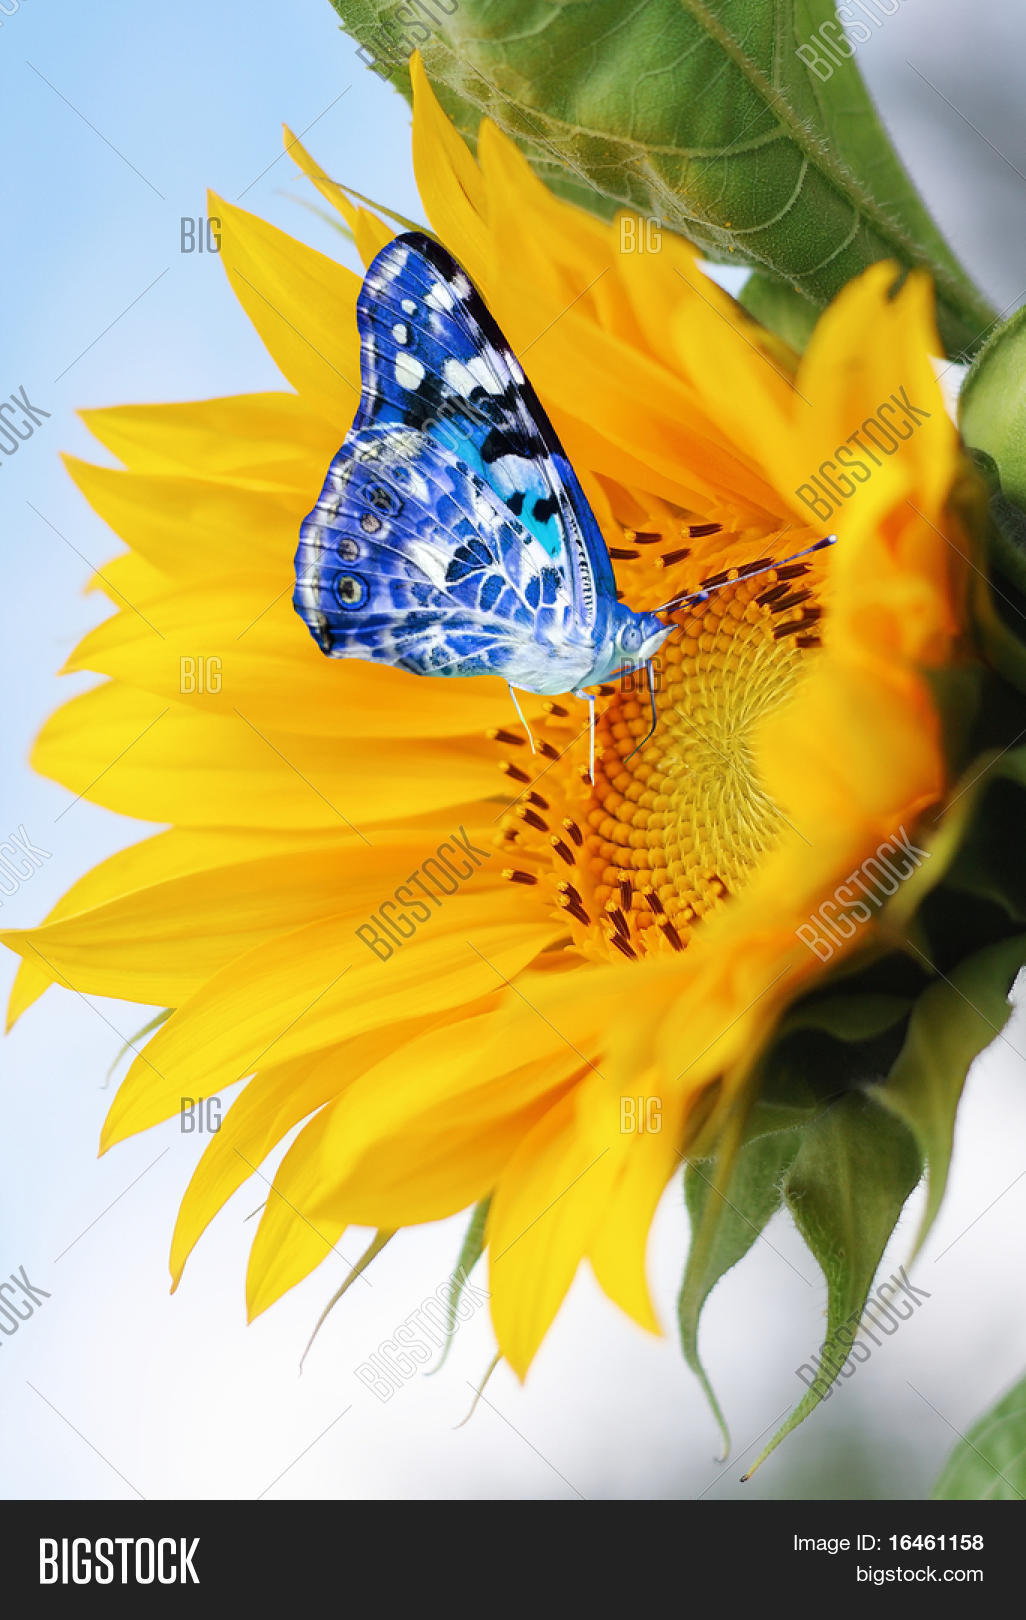 Sunflower Blue Butterfly Image & Photo | Bigstock